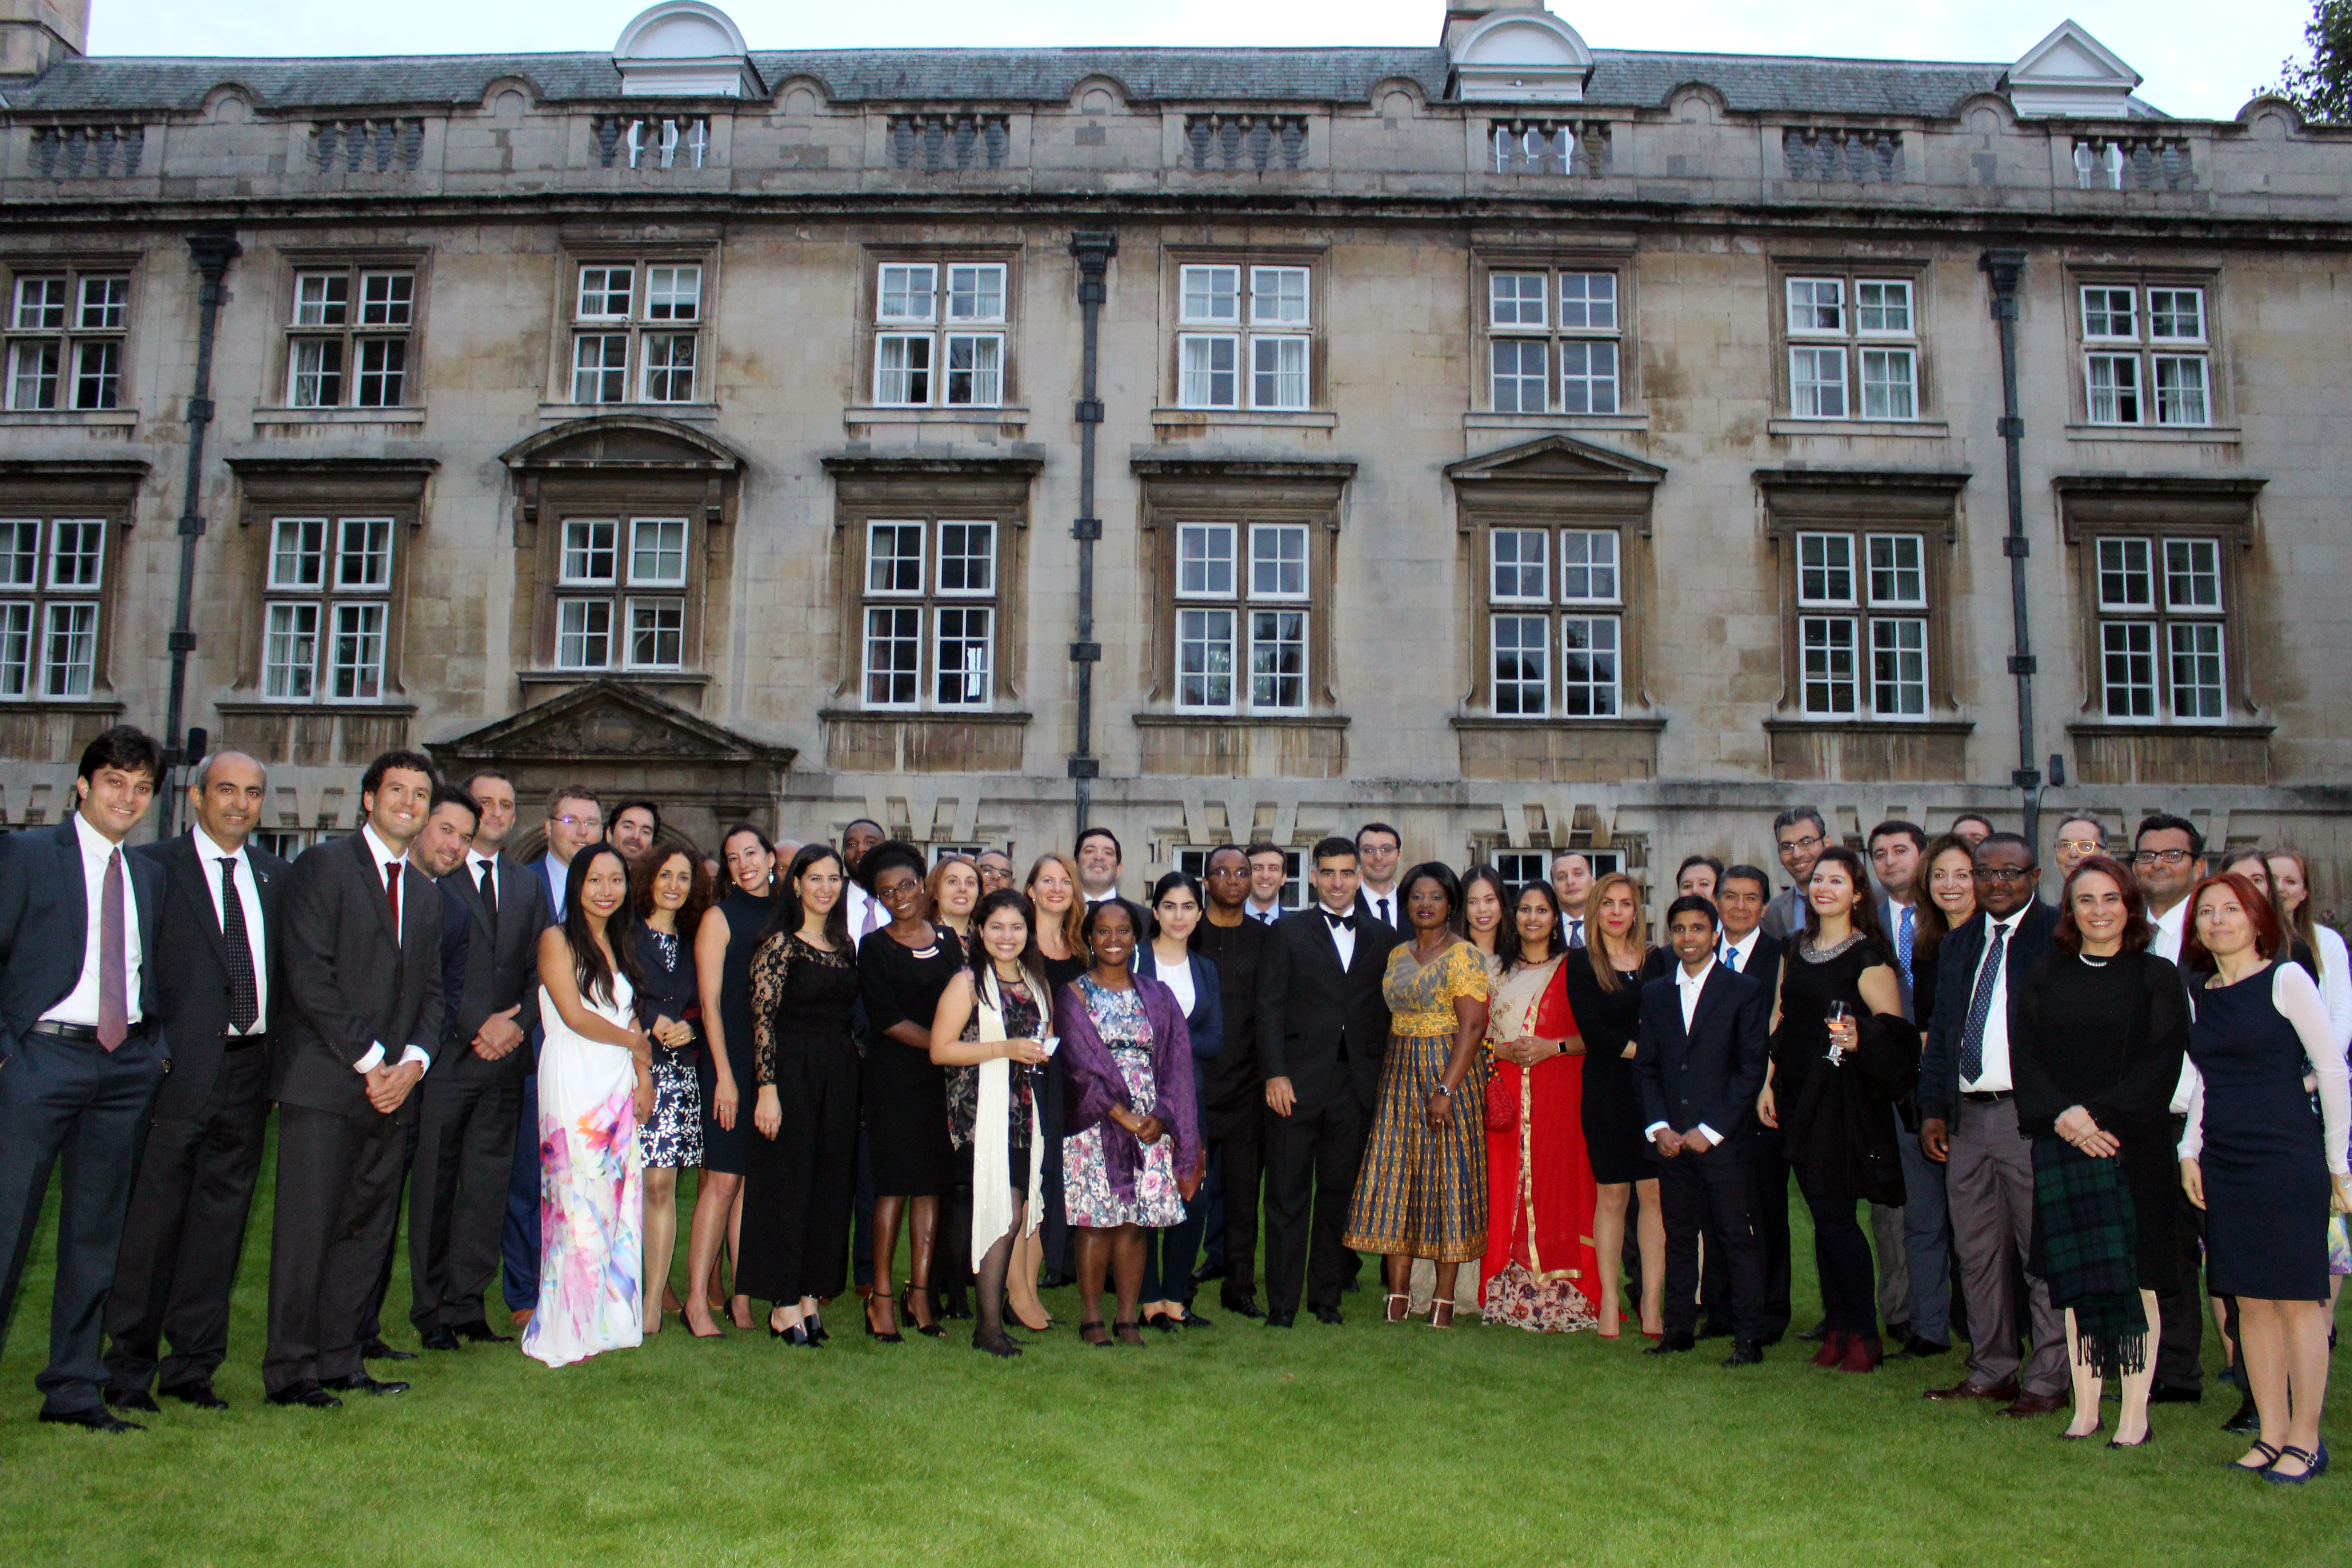 CHEVENING ALUMNI ALLIANCE OFFICIALLY LAUNCHED